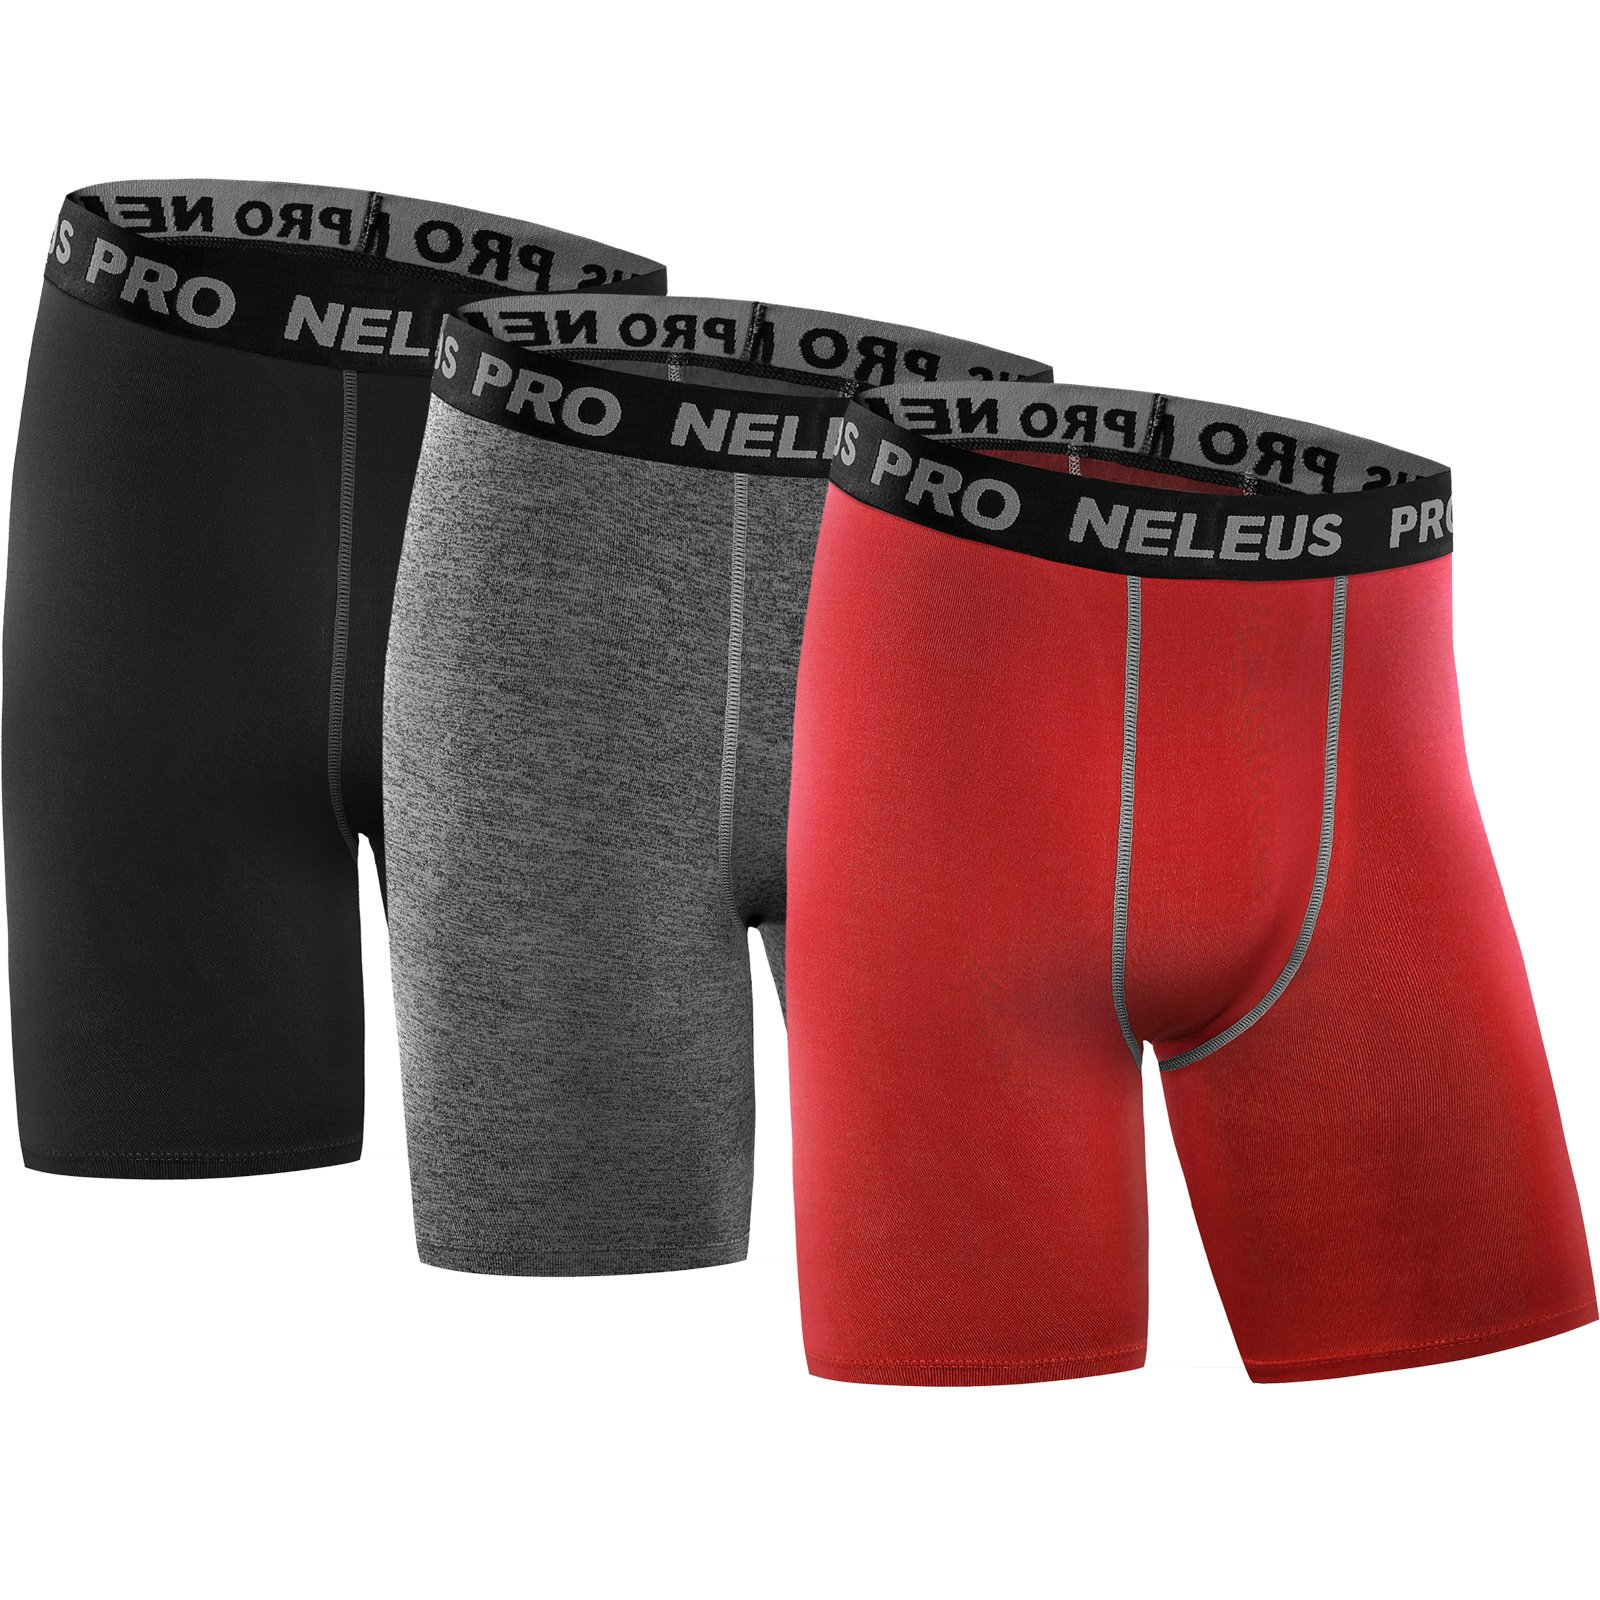 Neleus Men's 3 Pack Compression Shorts Running Workout Shorts,6034,Black,Grey,Red,US M,EU L by Neleus